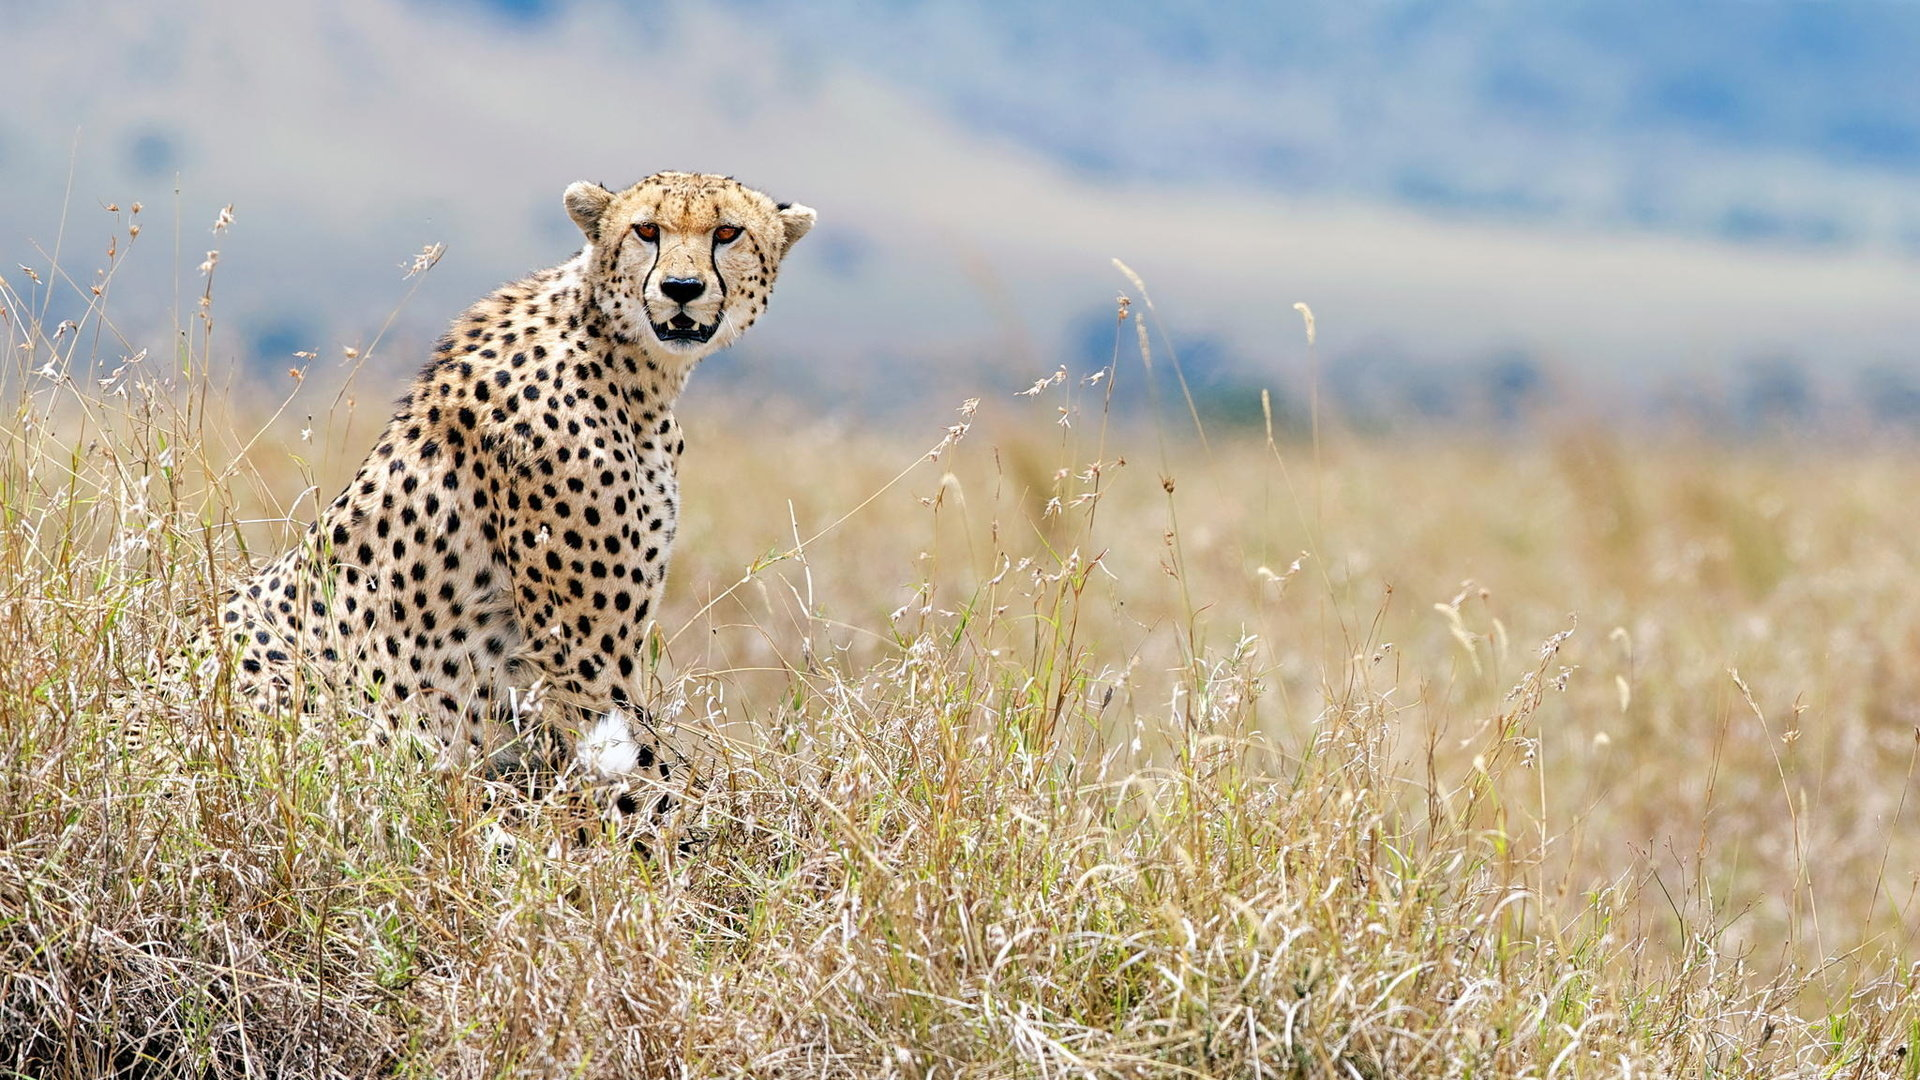 Download full hd 1920x1080 Cheetah computer wallpaper ID:161743 for free